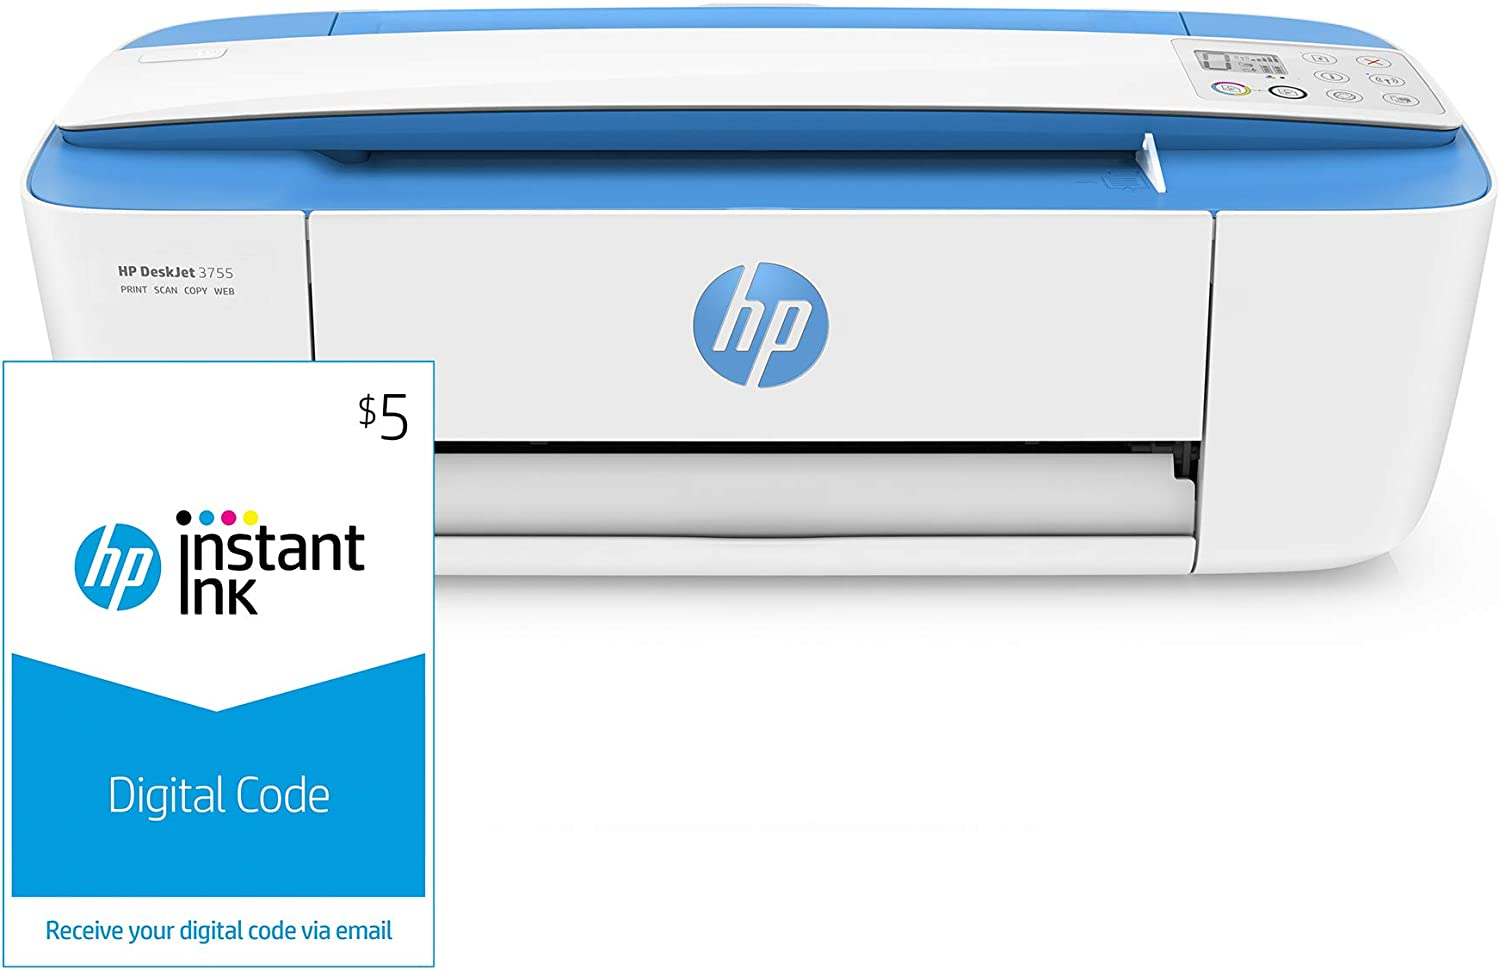 HP DeskJet 3755 Compact All-in-One Wireless Printer, HP Instant Ink & Amazon Dash Replenishment ready - Blue Accent (J9V90A) and Instant Ink $5 Prepaid Code